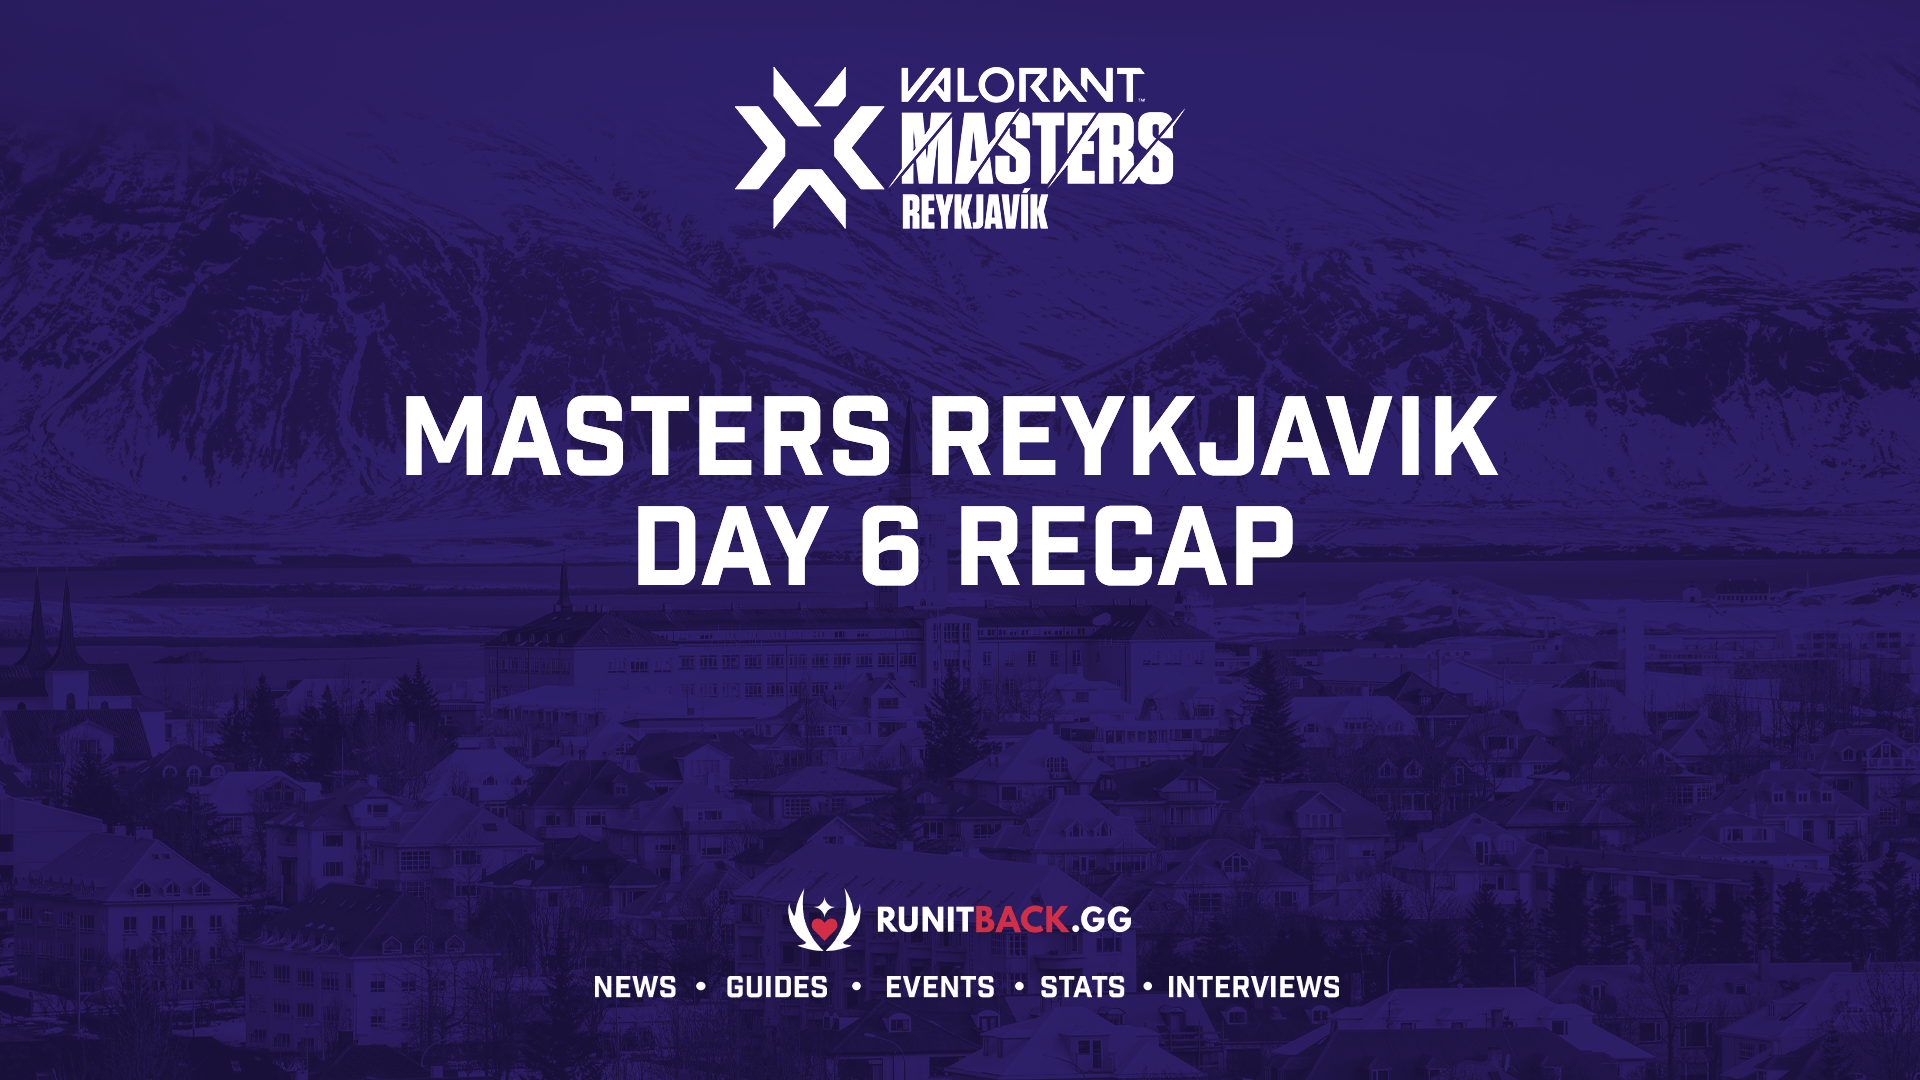 Sentinels' Grand Final opponent for Masters Reykjavik has been decided – Day 6 Recap